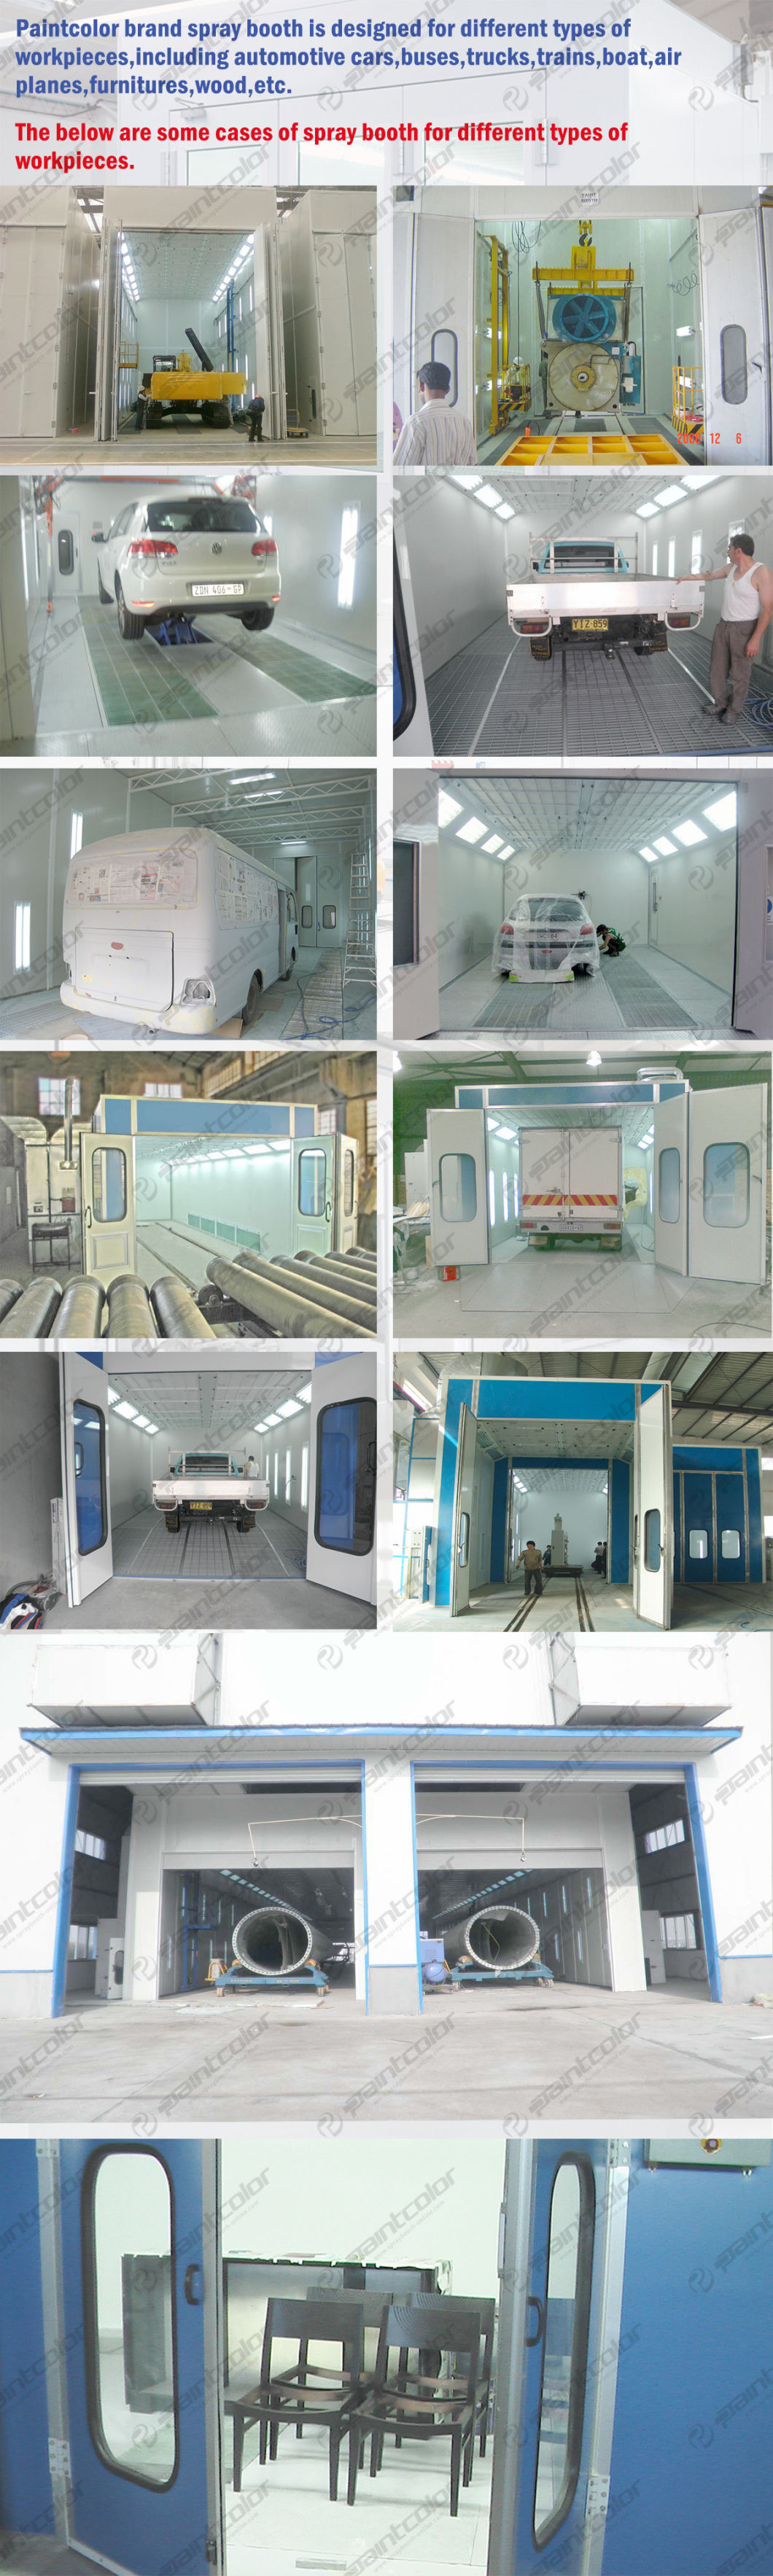 Vehicle Paint Booth with Air Ventilation Through Back Side Wall No Basement